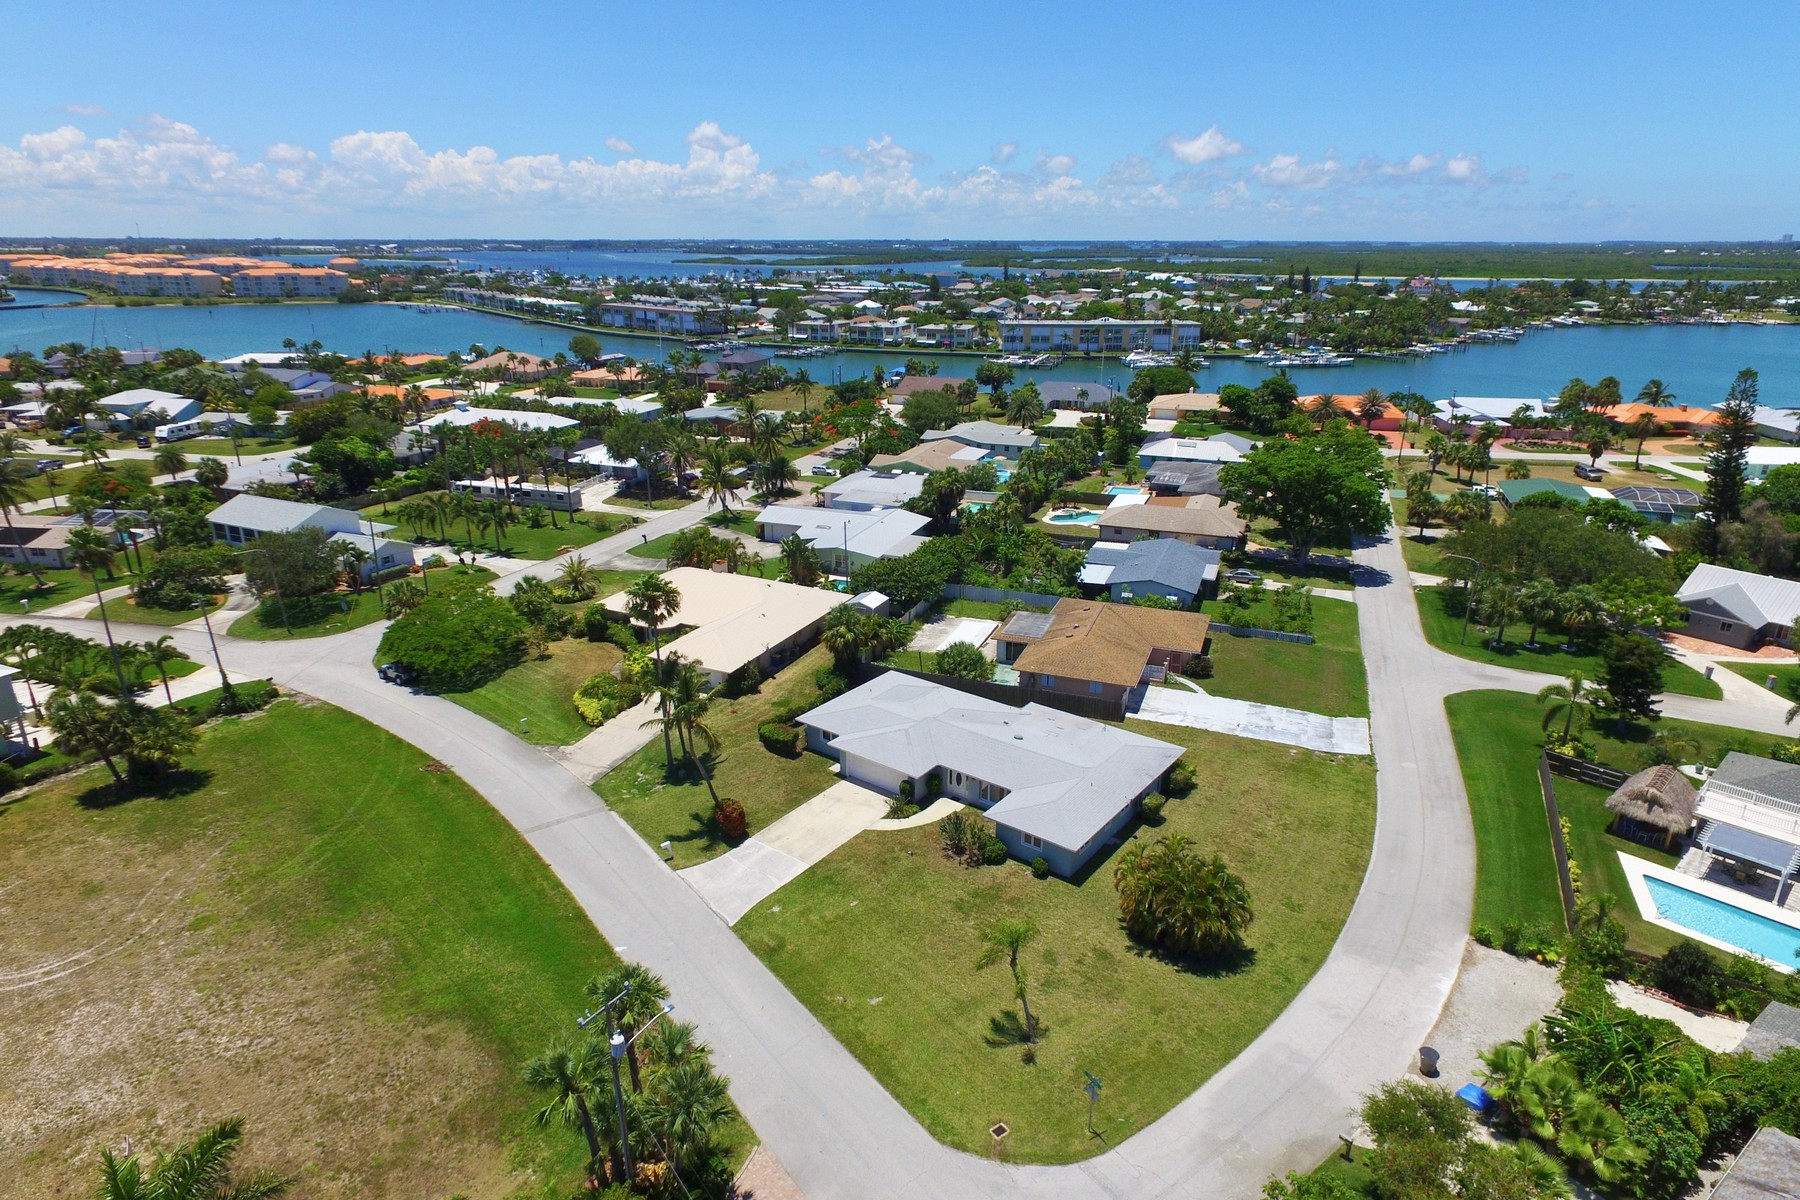 Single Family Home for Sale at Fantastic Location Steps to the Intracoastal 1660 Thumb Point Drive Fort Pierce, Florida 34949 United States